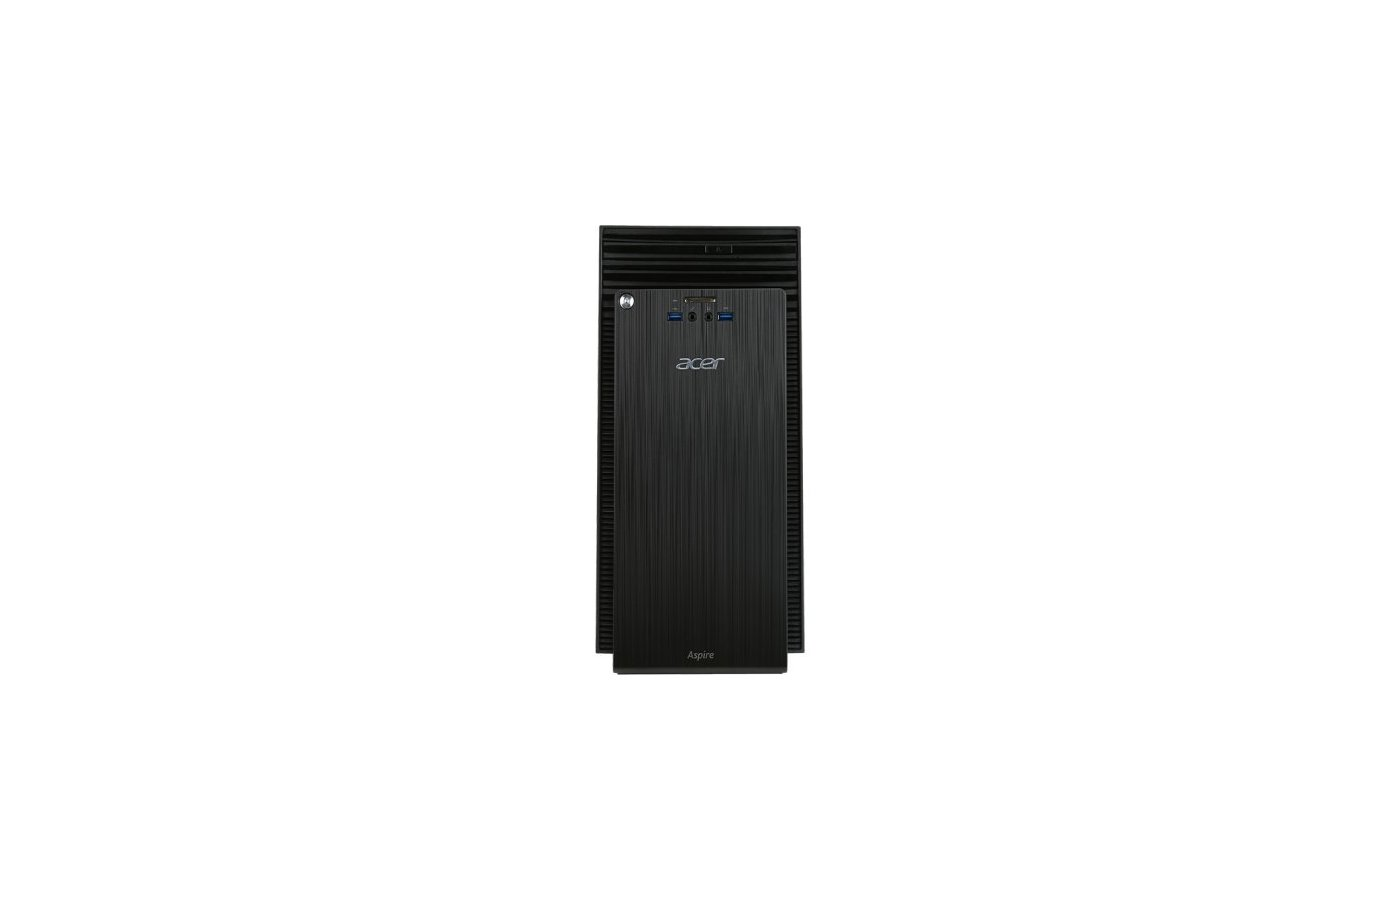 Системный блок Acer Aspire TC-704 DM /DT.B41ER.002/